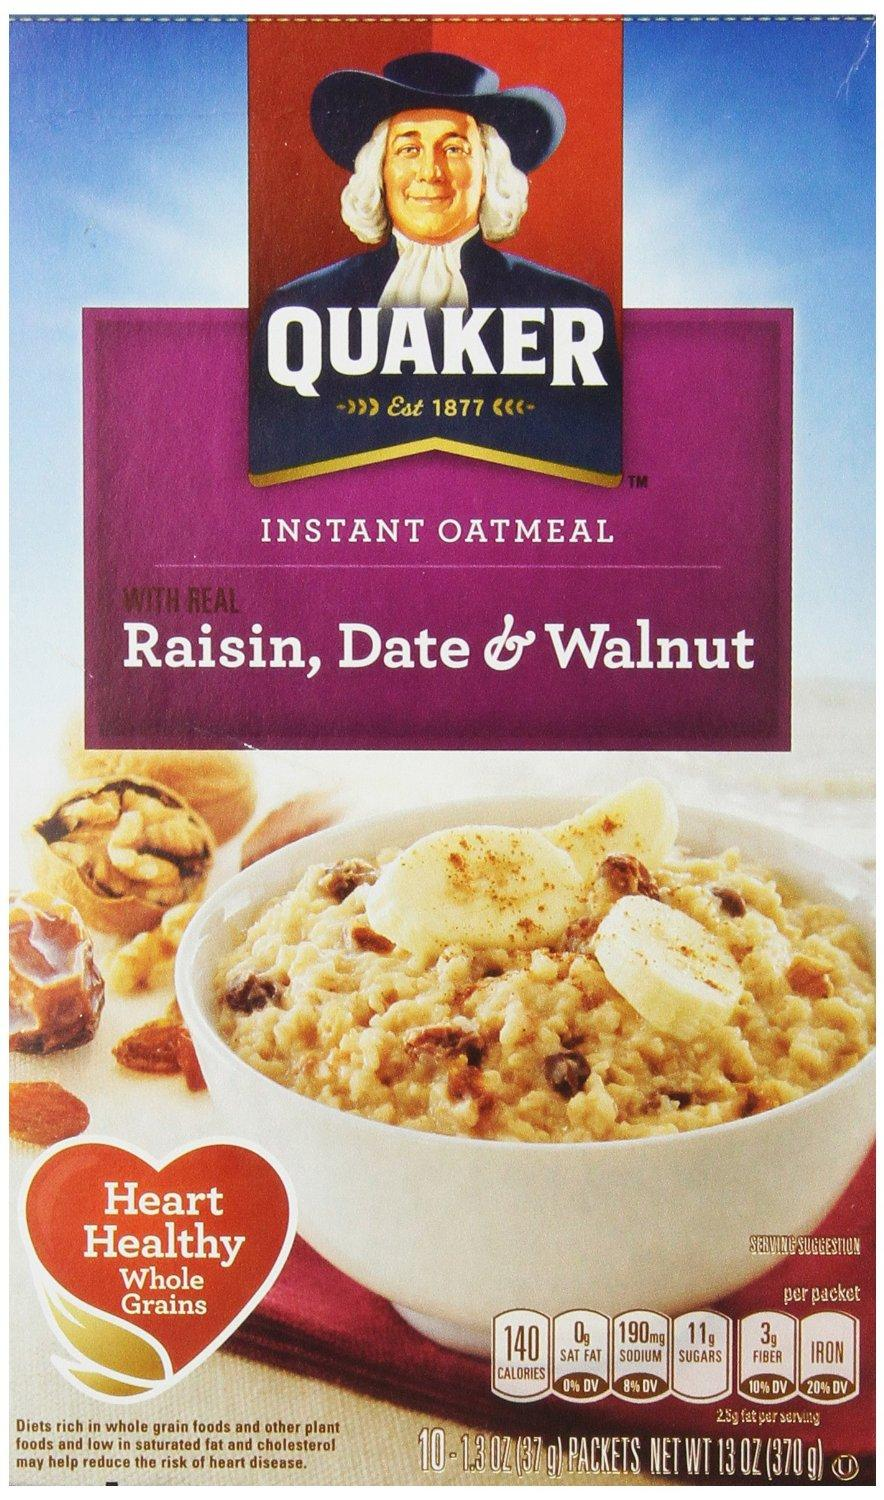 Select Quaker Instant Oatmeal, 10 or 8 Count (Pack of 4)